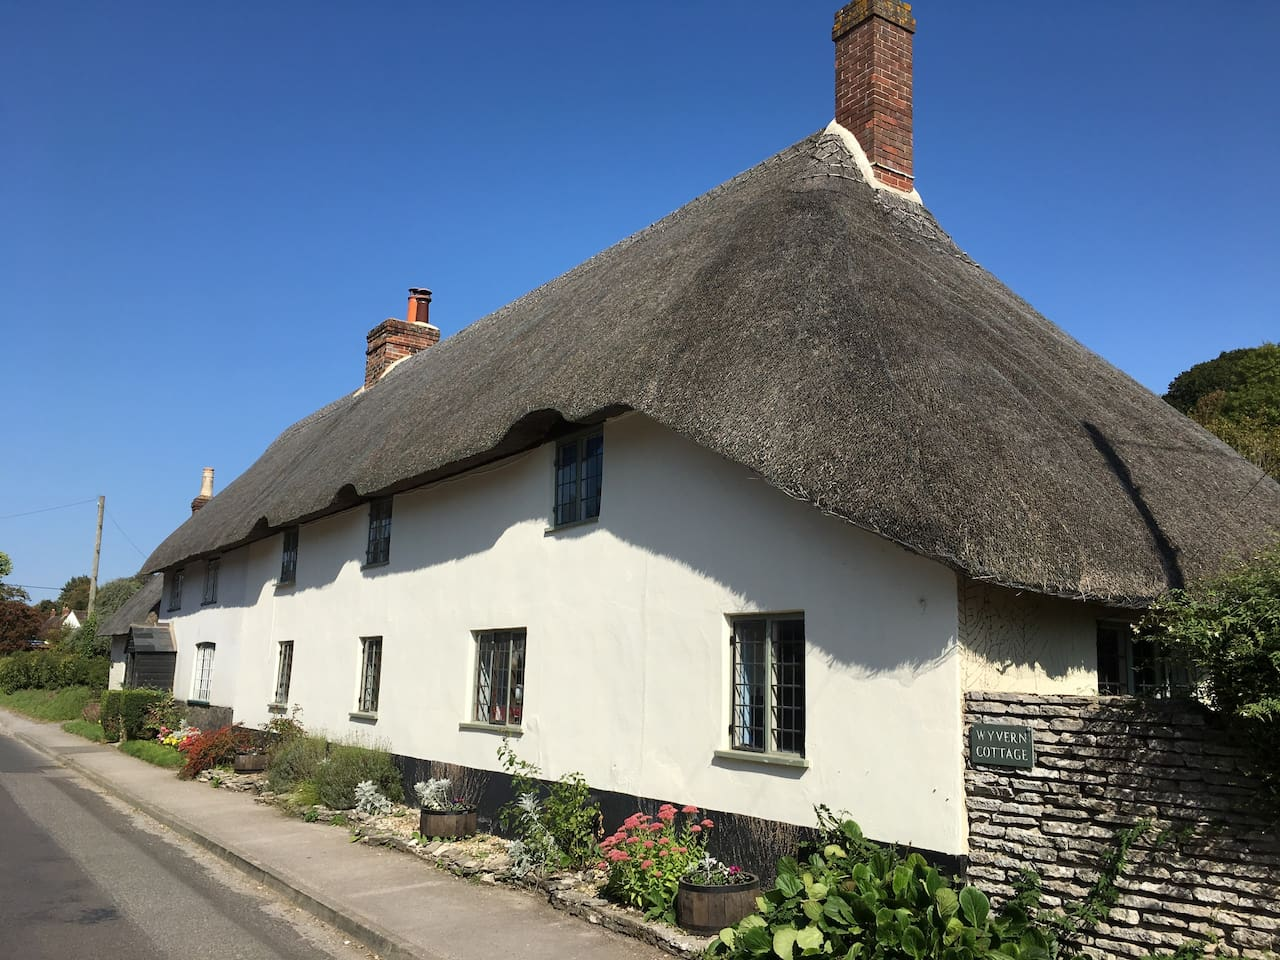 Wyvern Cottage is a typical Dorset Long House. Originally two cottages, the property has been sympathetically renovated to make one light, spacious and cosy cottage. It is the perfect base from which to explore the beautiful county of Dorset.